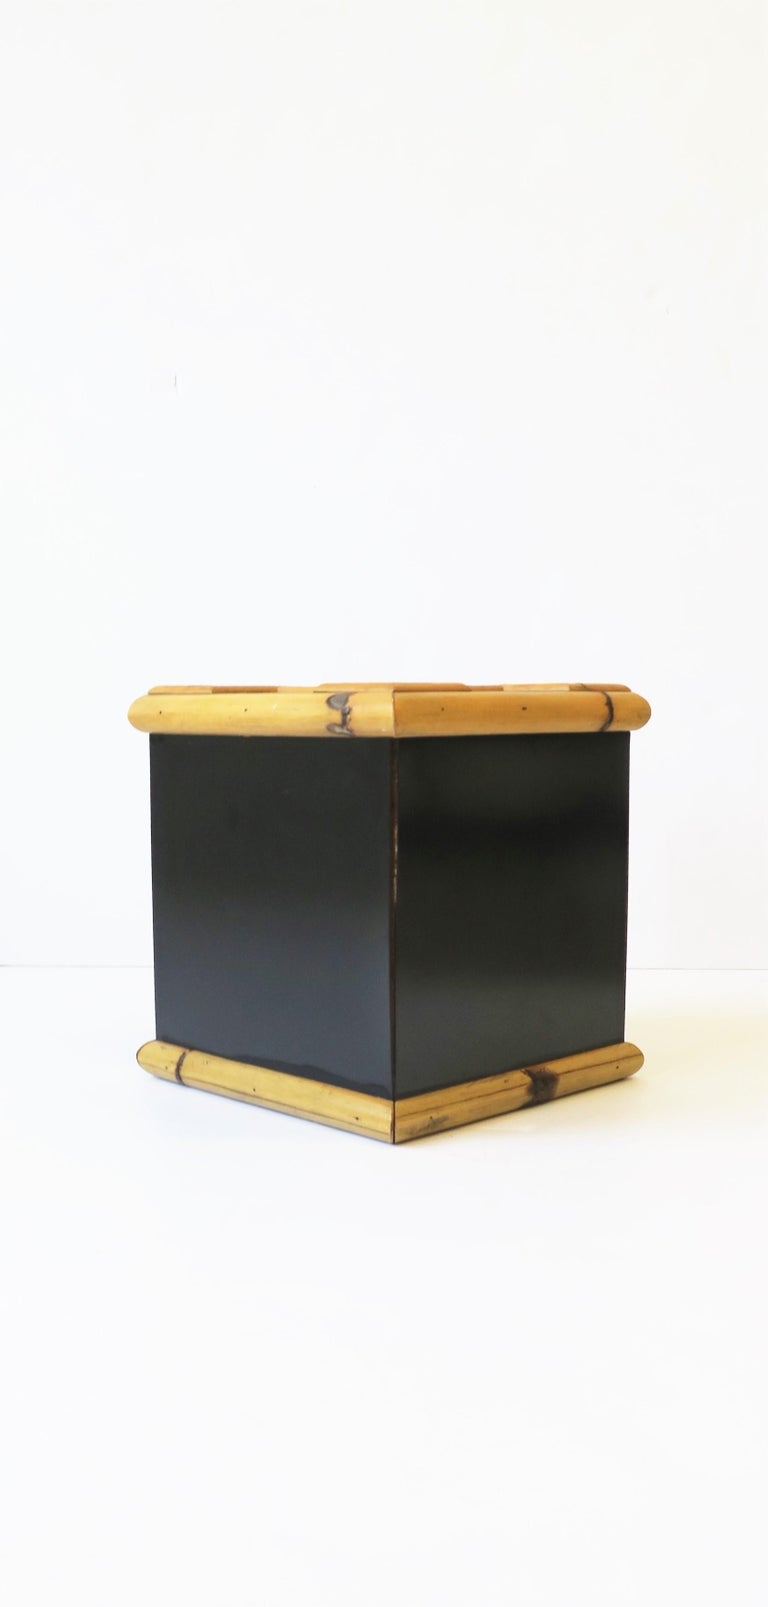 Bamboo Ice Bucket, circa 1960s For Sale 5